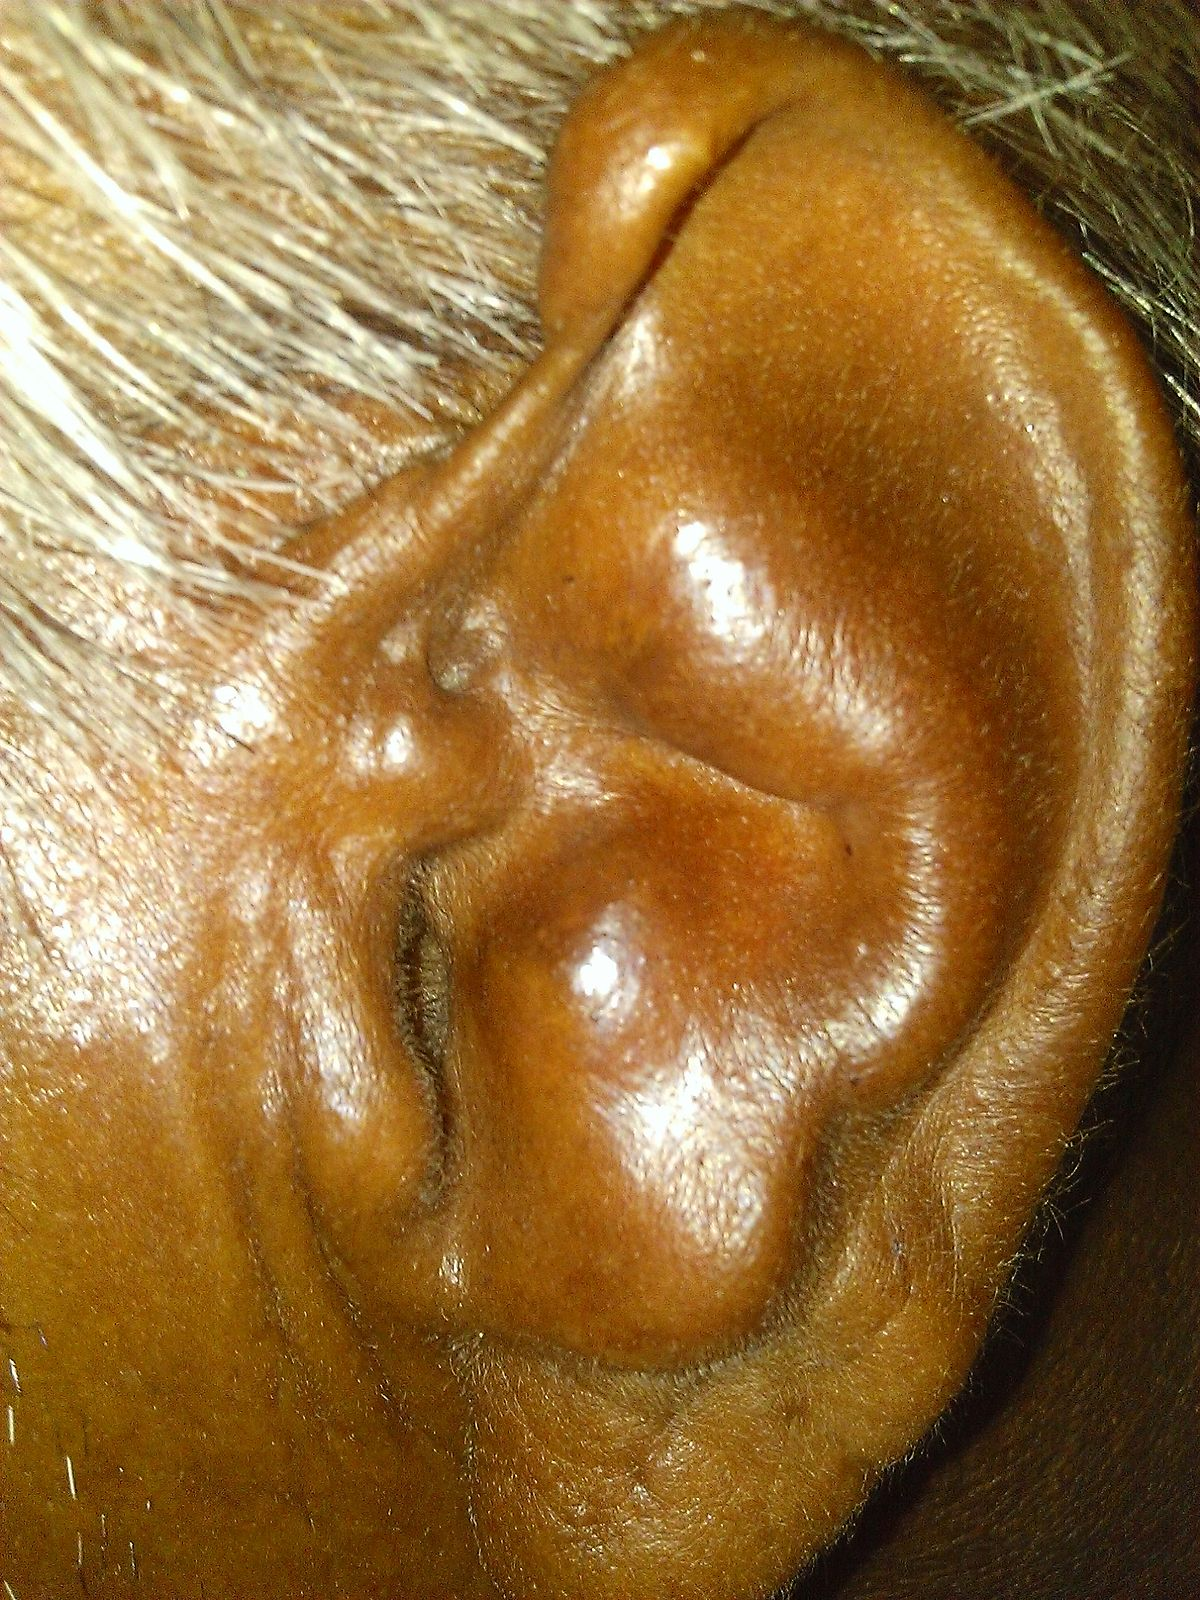 cauliflower ear wikipedia